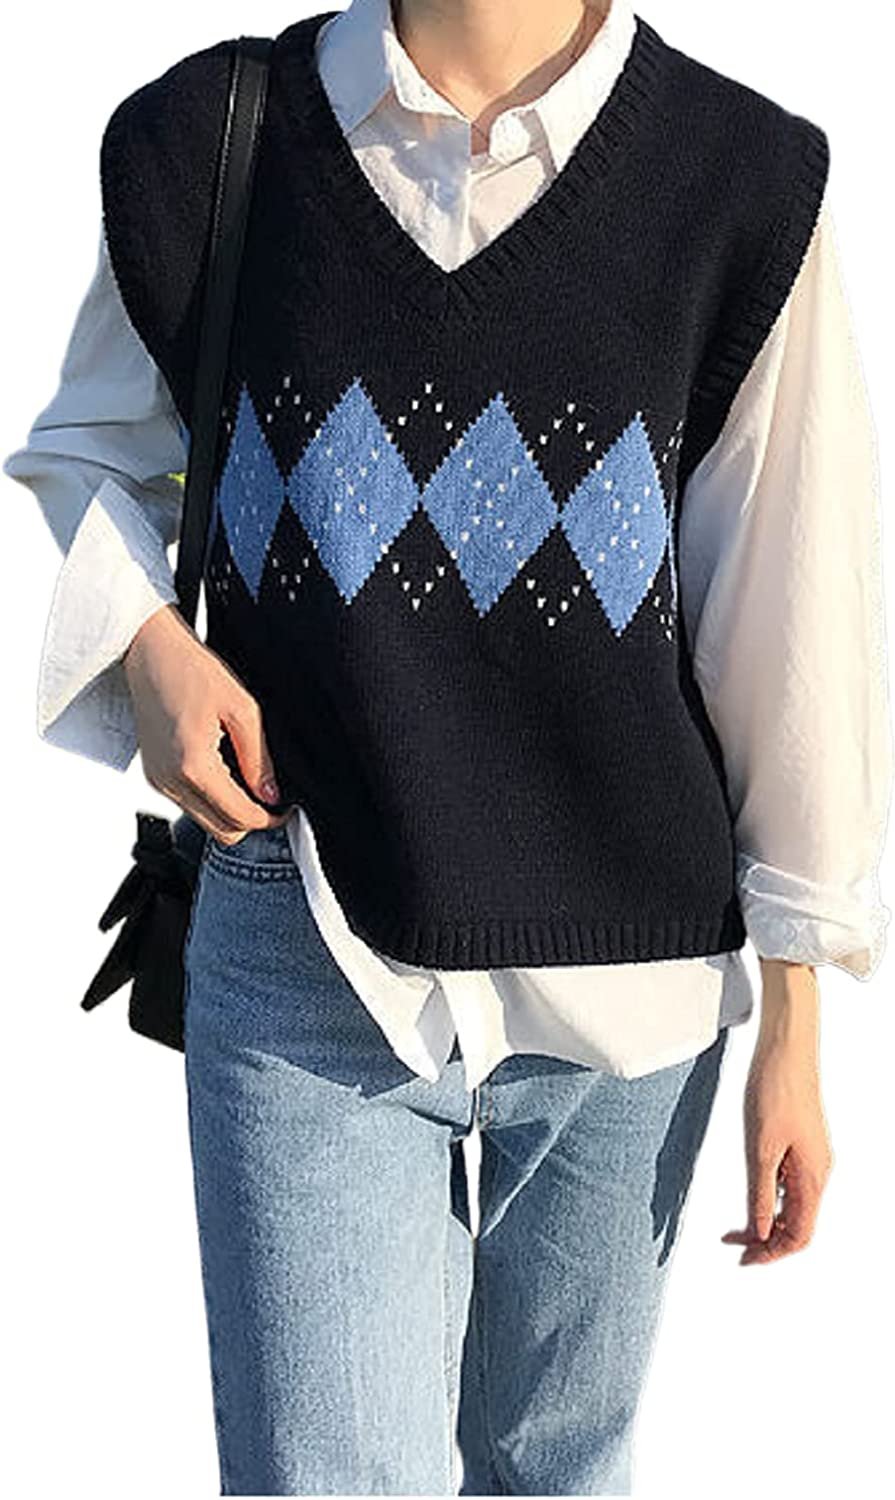 Women's Y2K Sleeveless V-Neck Argyle Plaid Knit Vest Sweater College Style Loose Sweater Tank Top Pullover